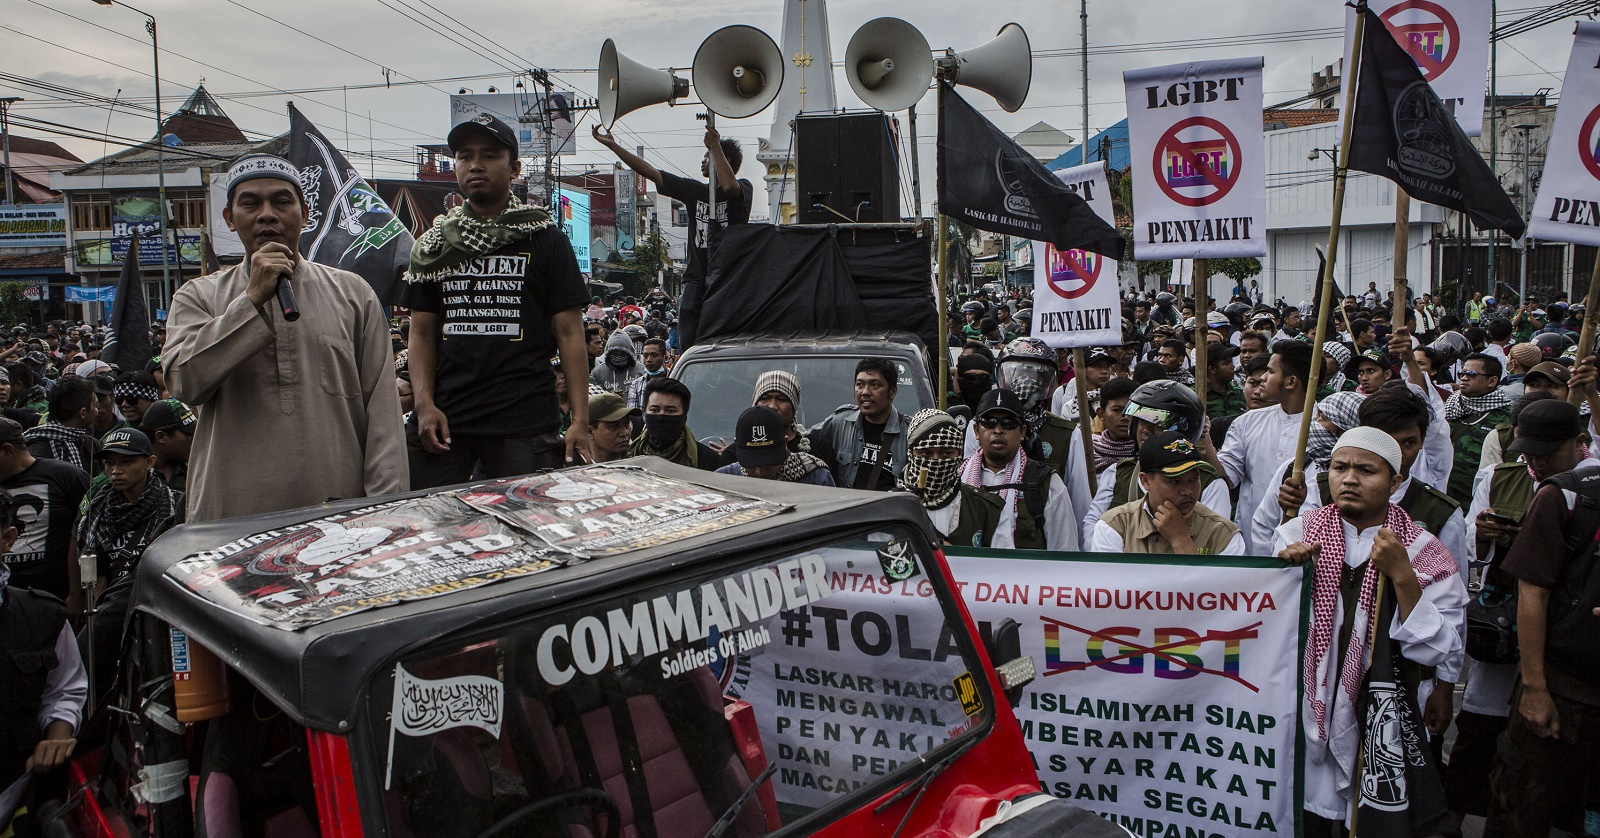 Anti-LGBT Sentiments Rise In Indonesia